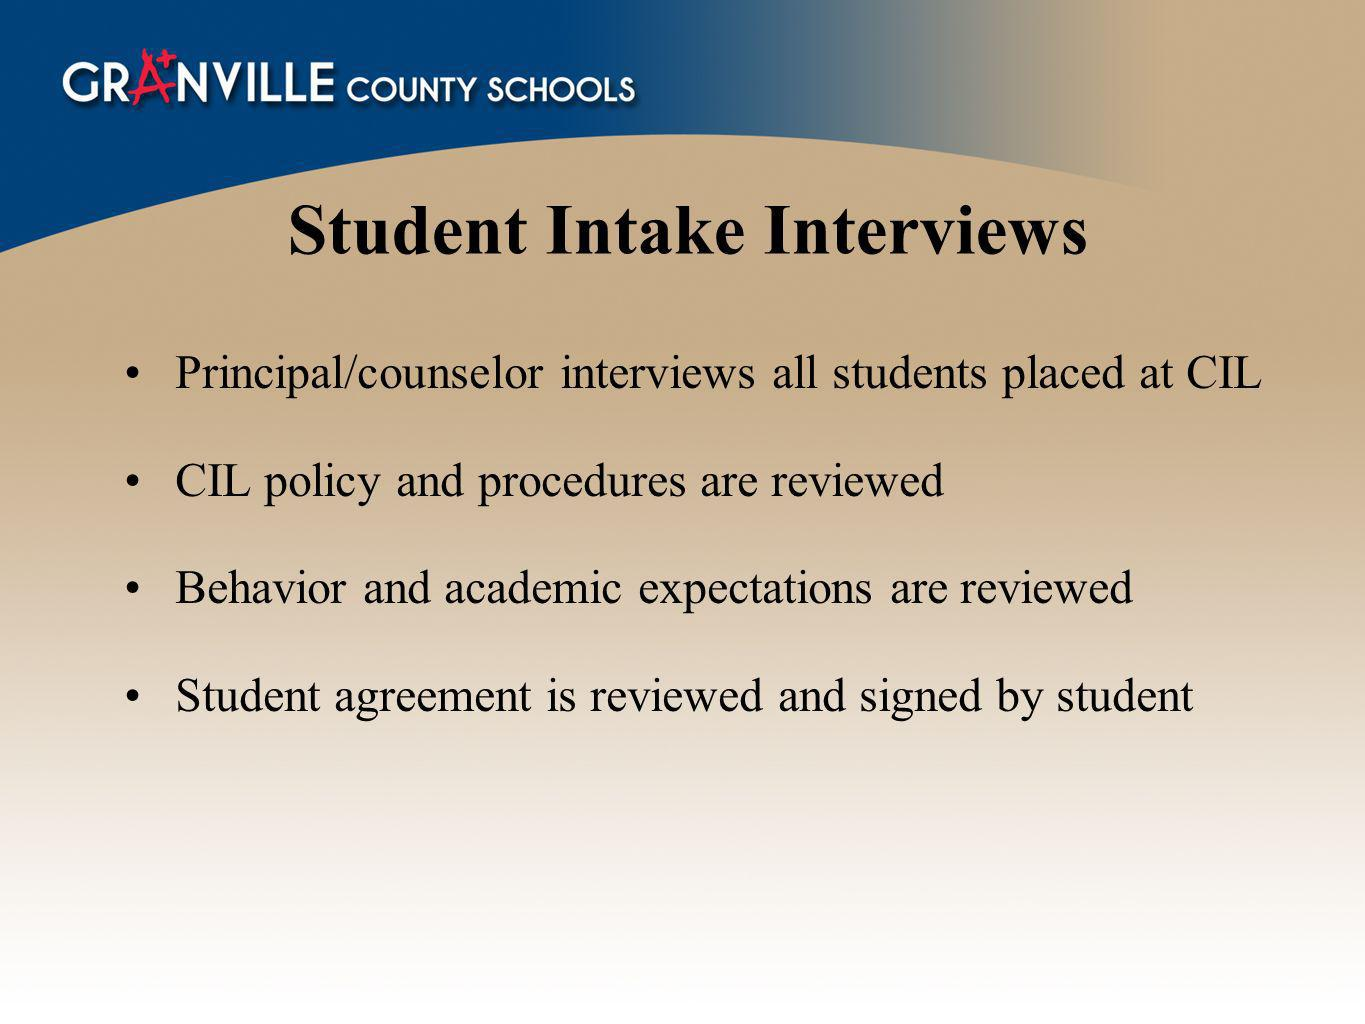 Student Intake Interviews